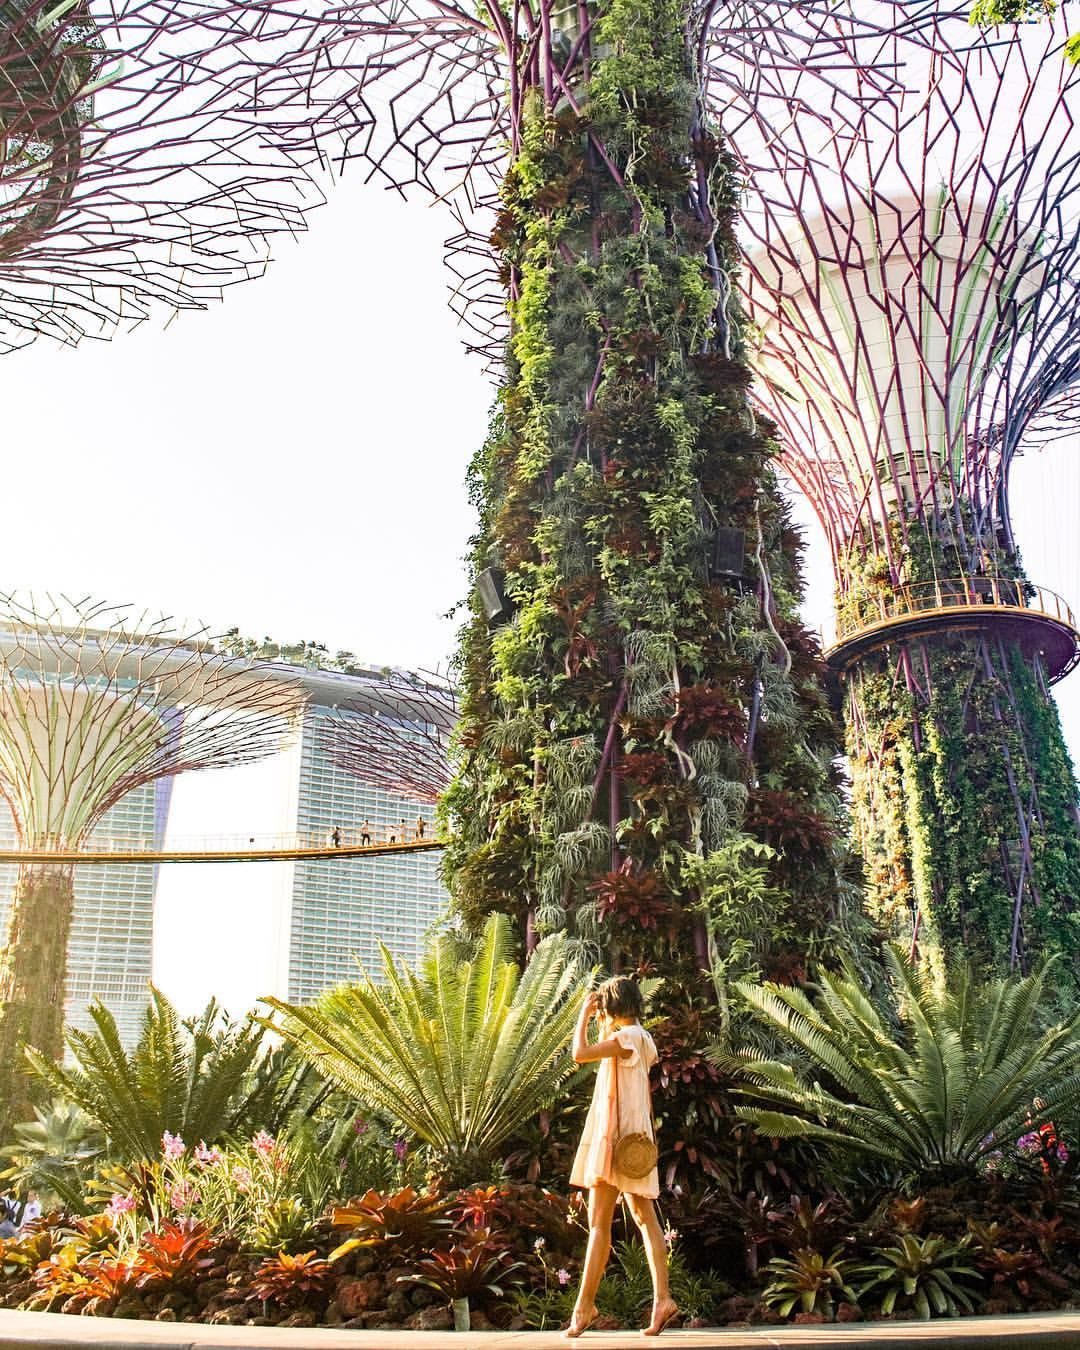 ddc505684a9c9b66b56994151ef7dc81 - Best Time To Go To Gardens By The Bay